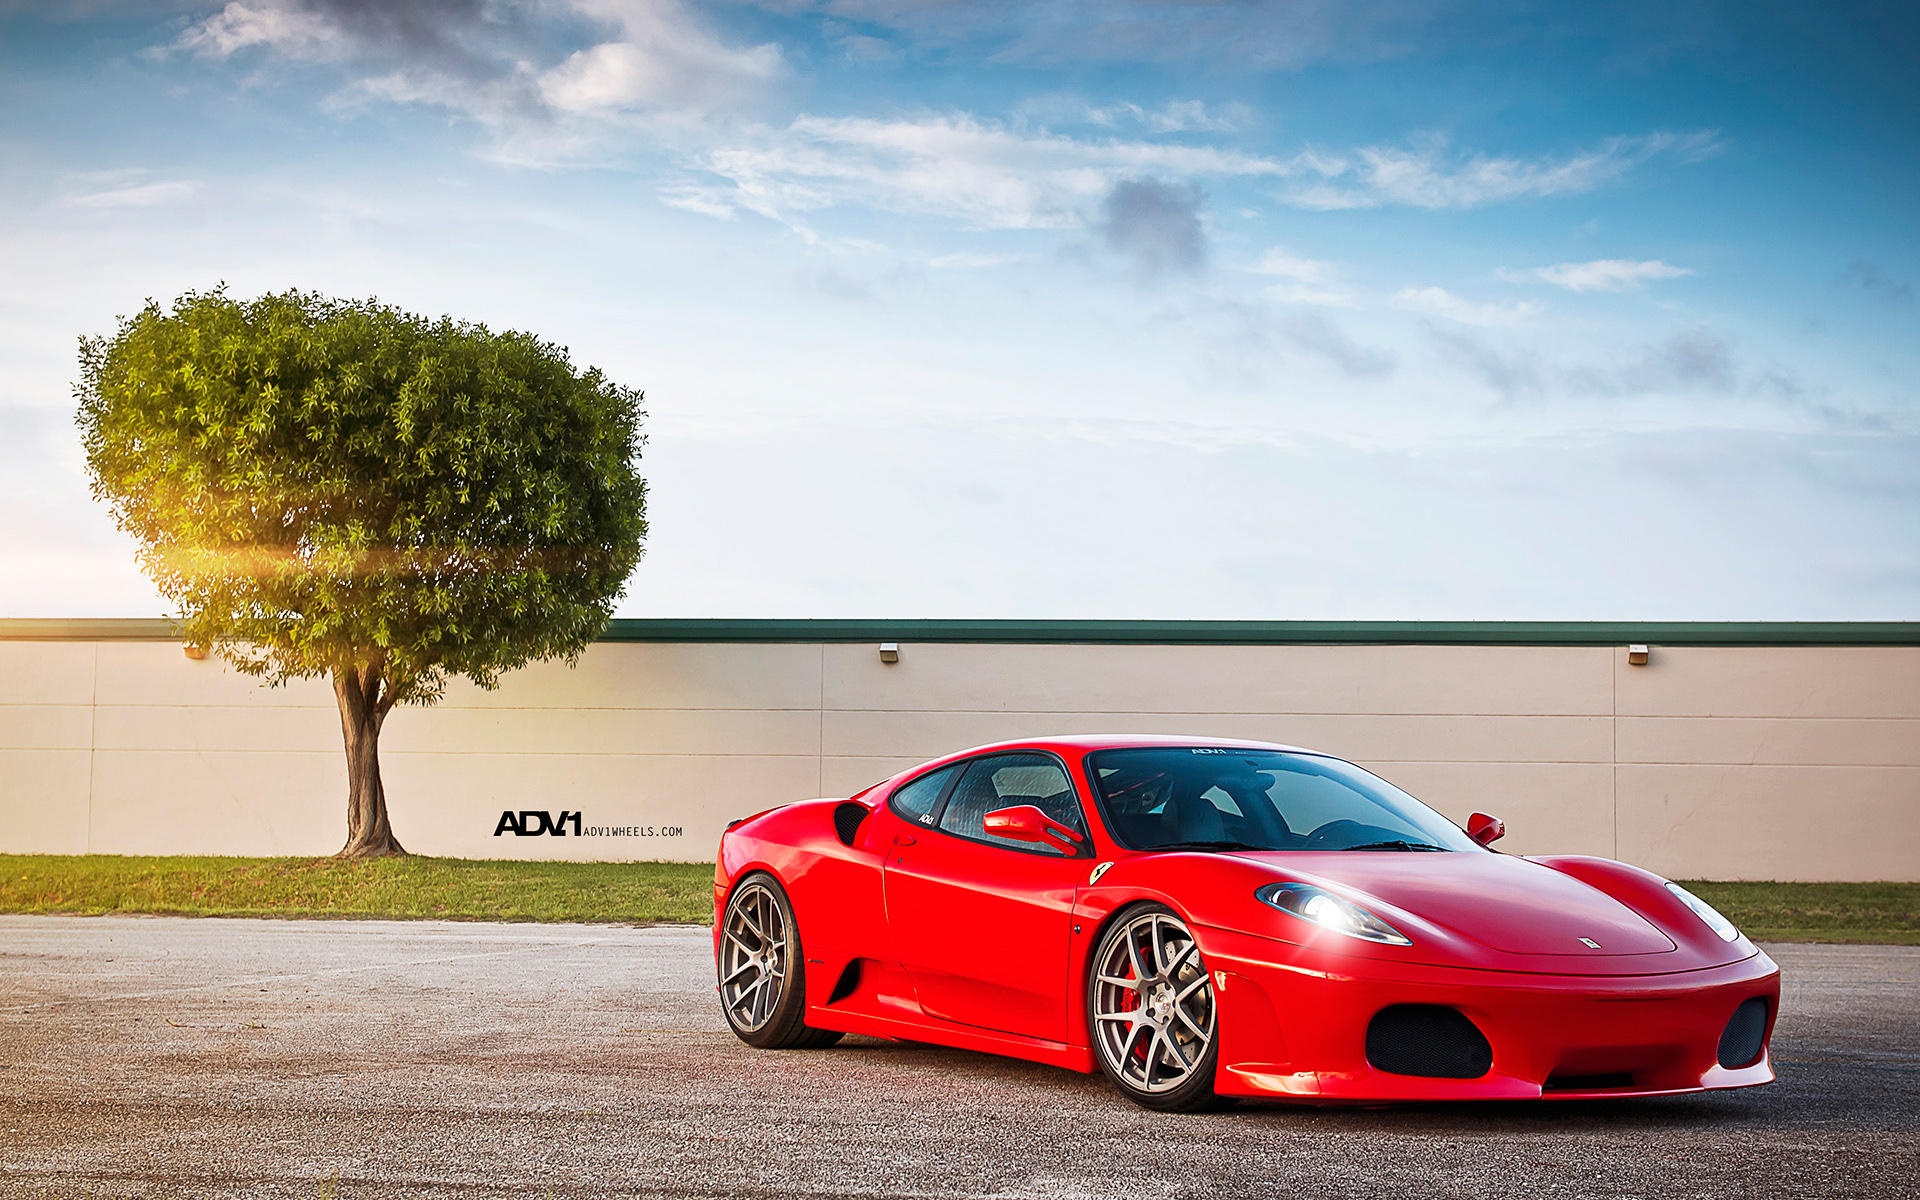 ADV1 Ferrari F430 Wallpapers HD Wallpapers 1920x1200